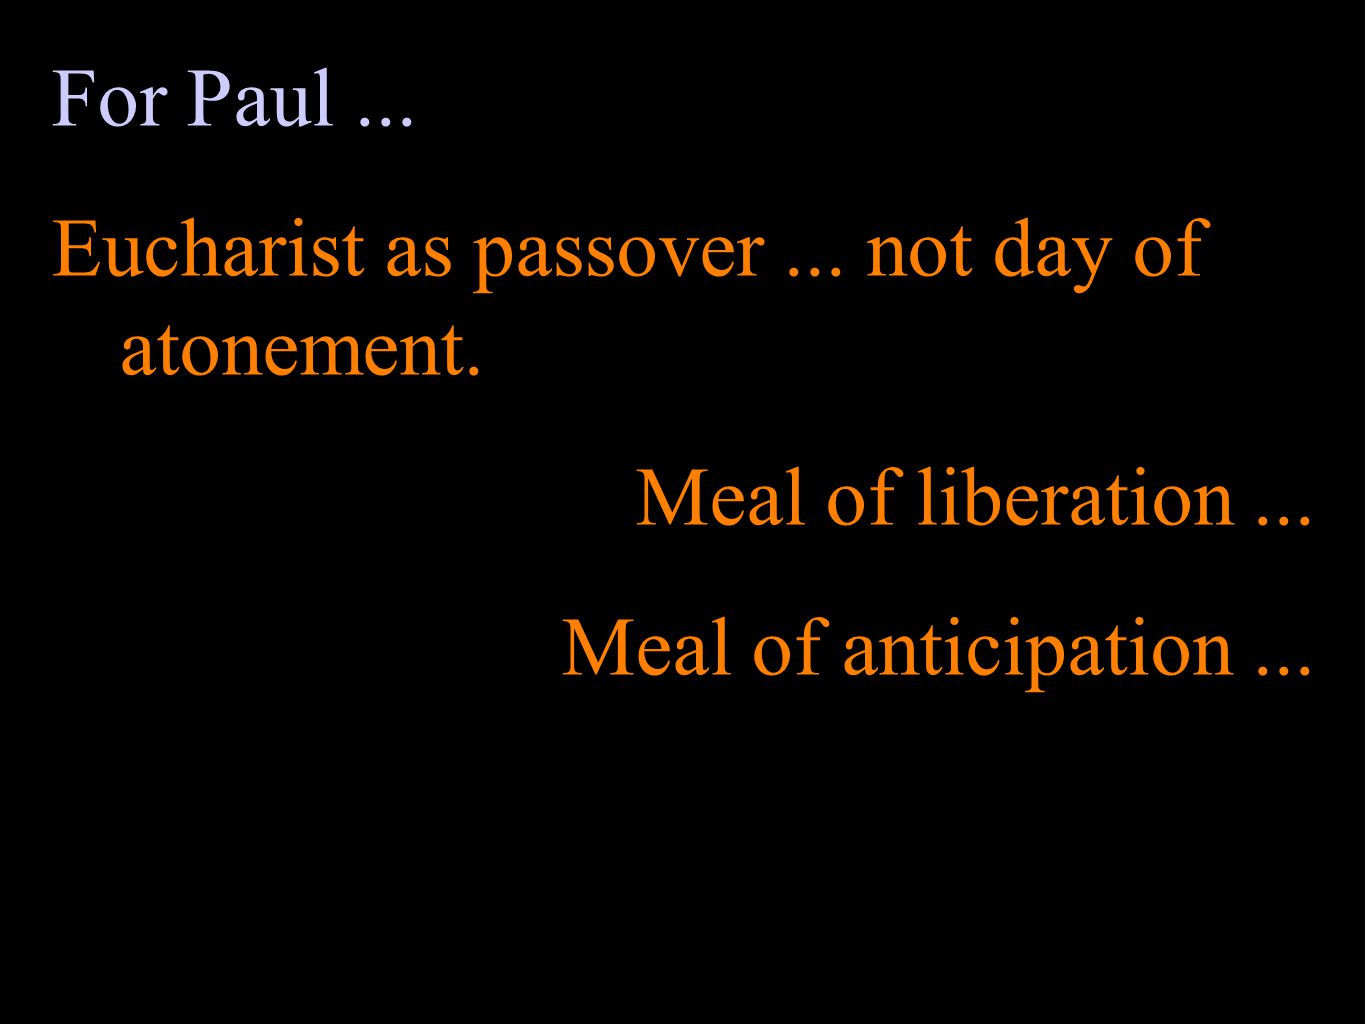 For Paul... Eucharist as passover... not day of atonement.